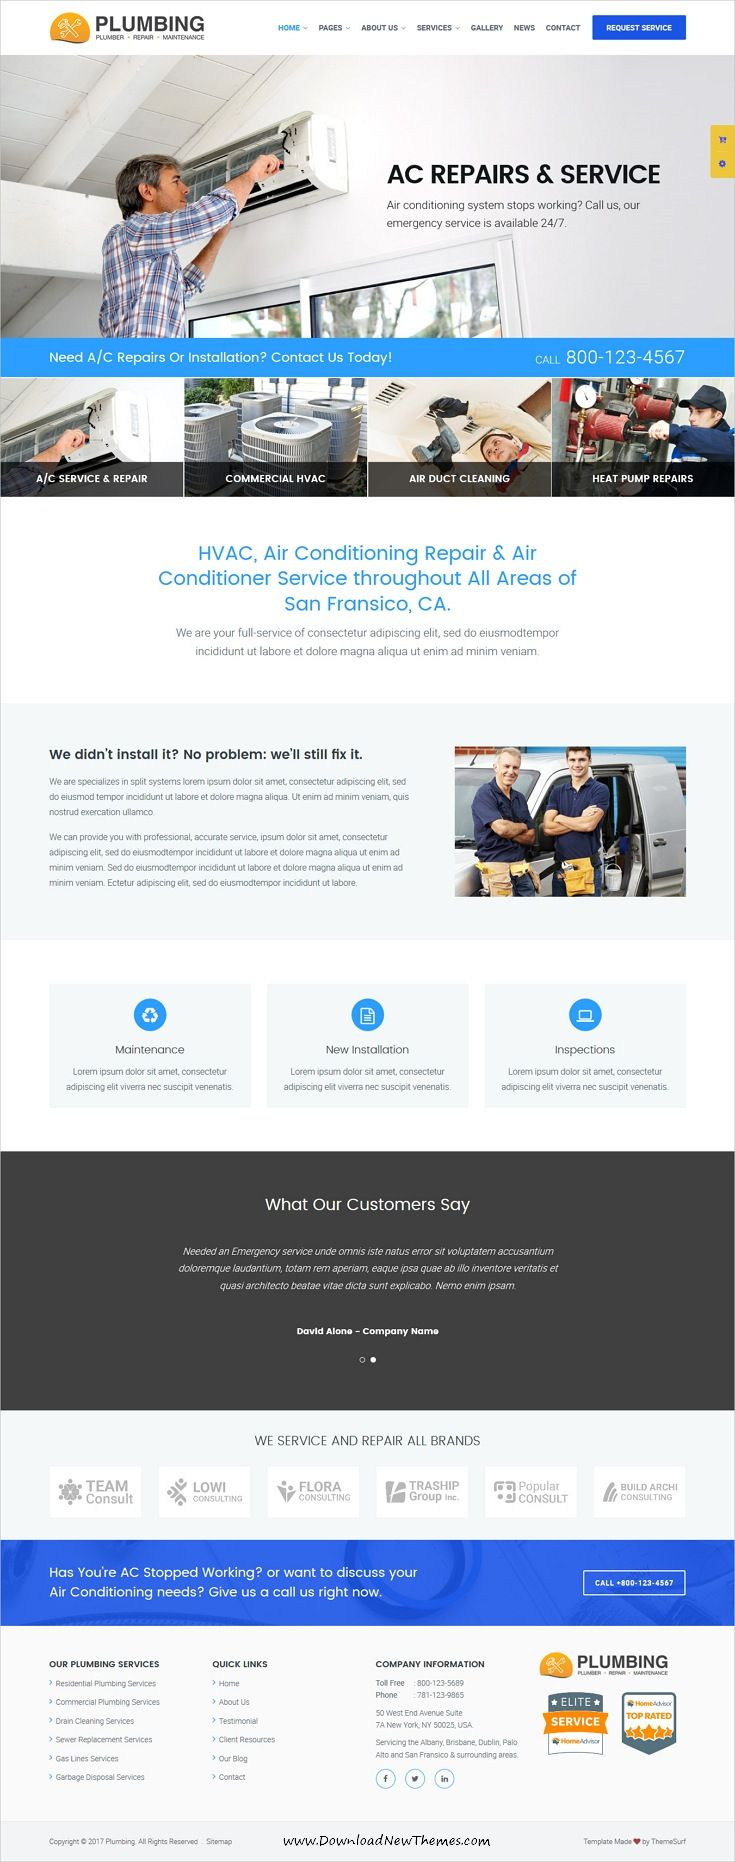 Plumbing Plumber And Repair Services Maintenance Html Template Plumber Web Design Examples Plumbing Companies